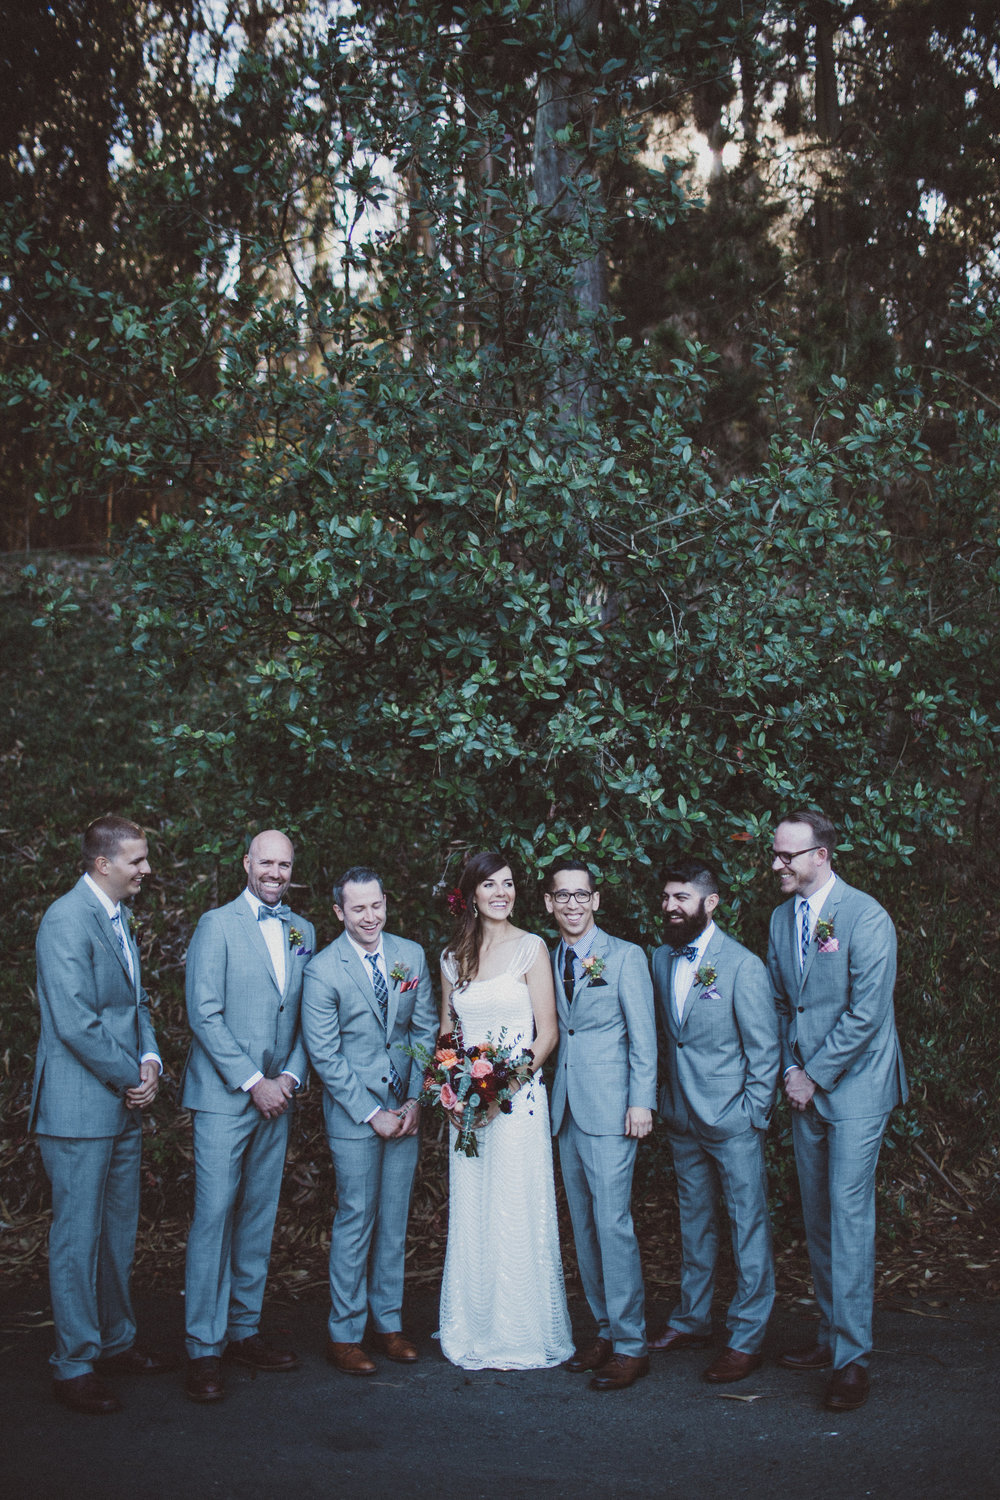 Nichole_Will_SanFranciso_Wedding_13.JPG